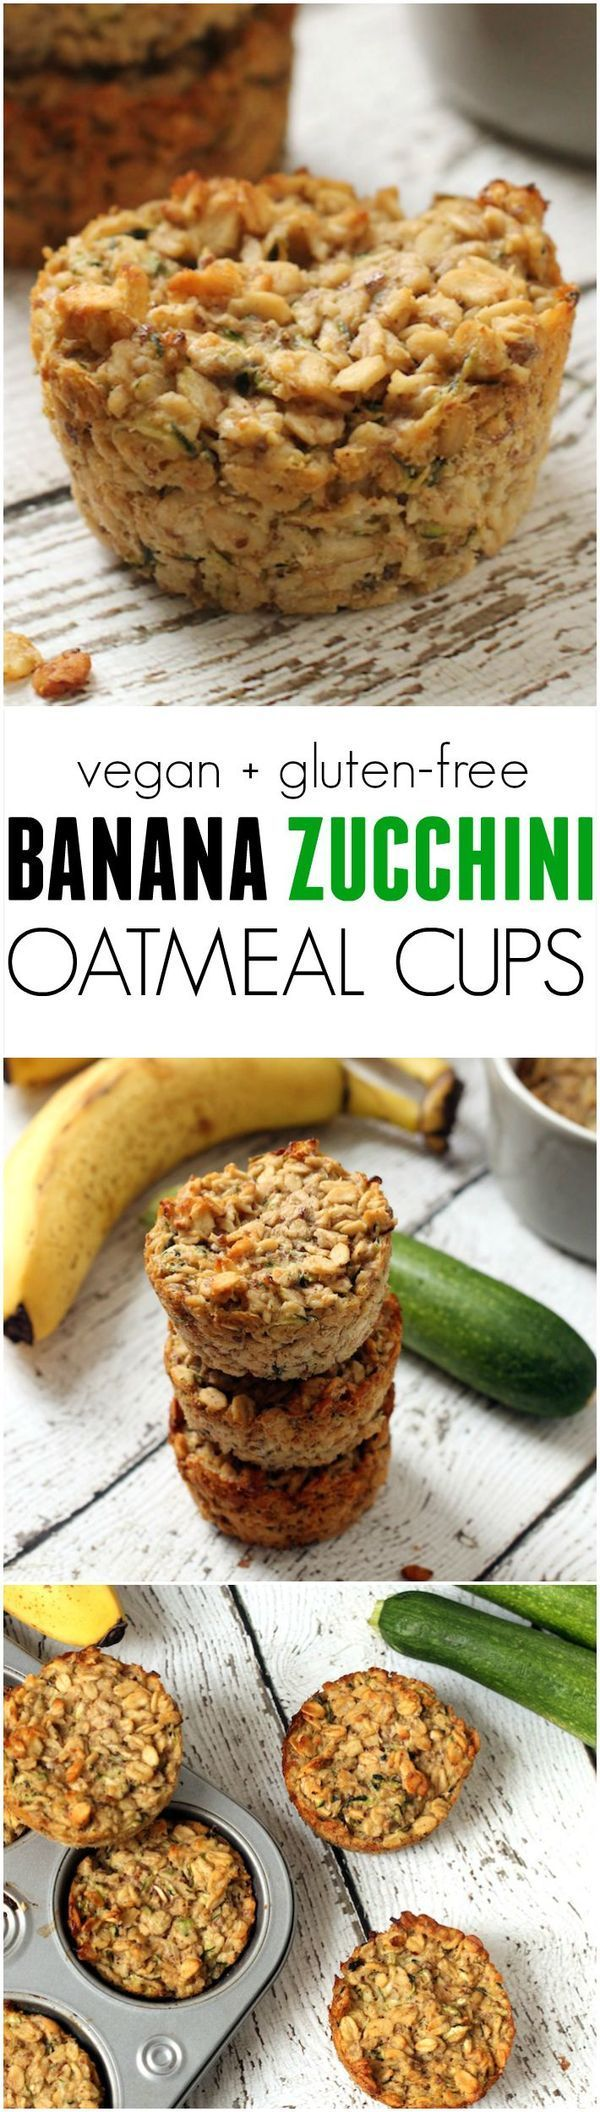 Banana Zucchini Oatmeal Cups --a portable, easy, healthy, breakfast on-the-go! #Vegan, #glutenfree, kid-friendly, no refined sugar. #healthykids